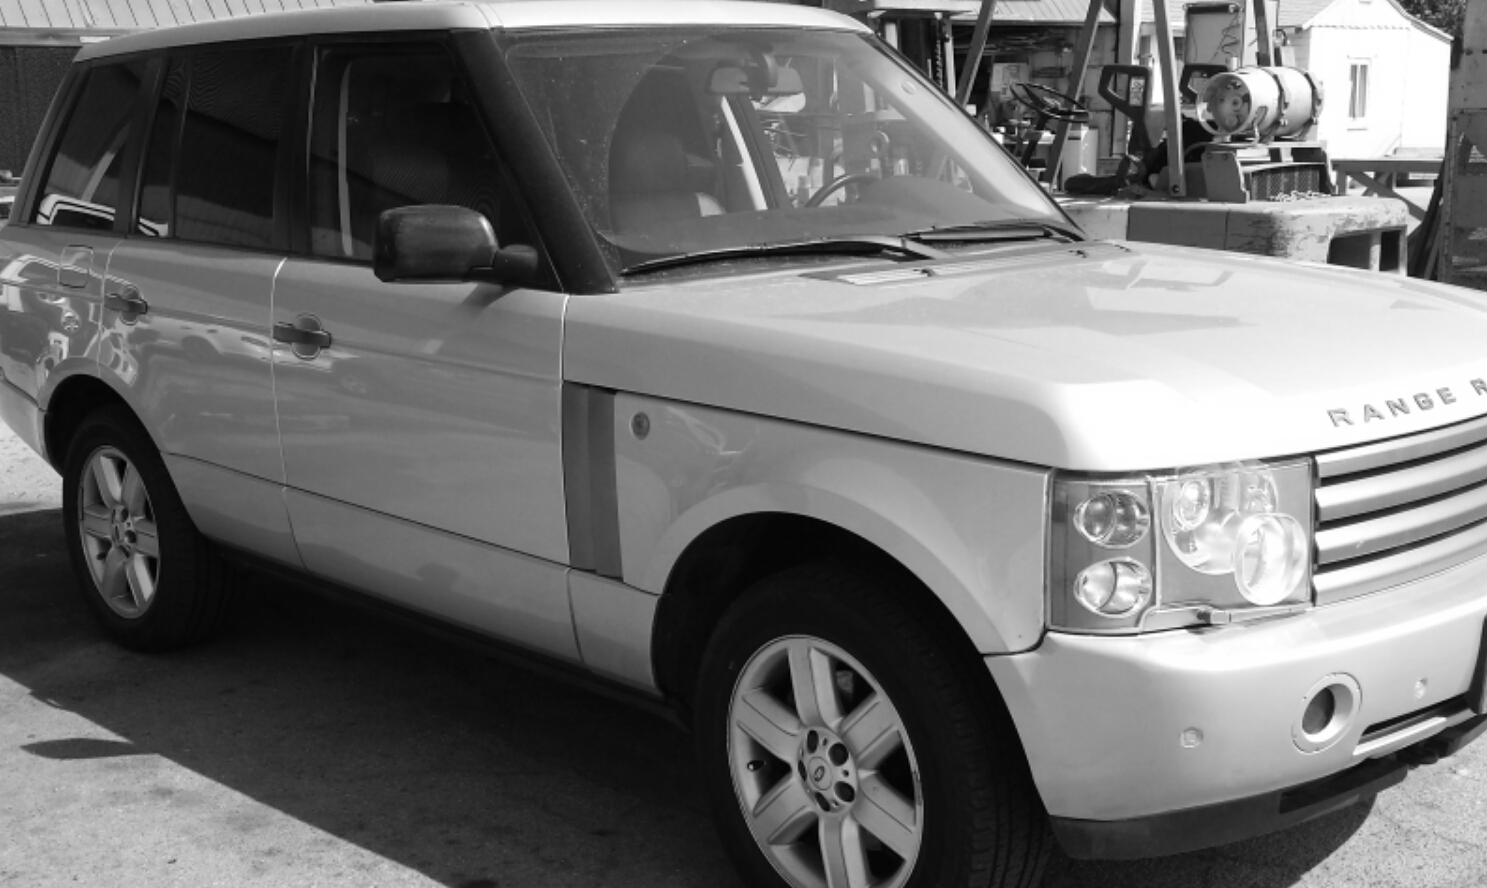 Range Rover Steering Columns: Key Will Not Turn in Ignition